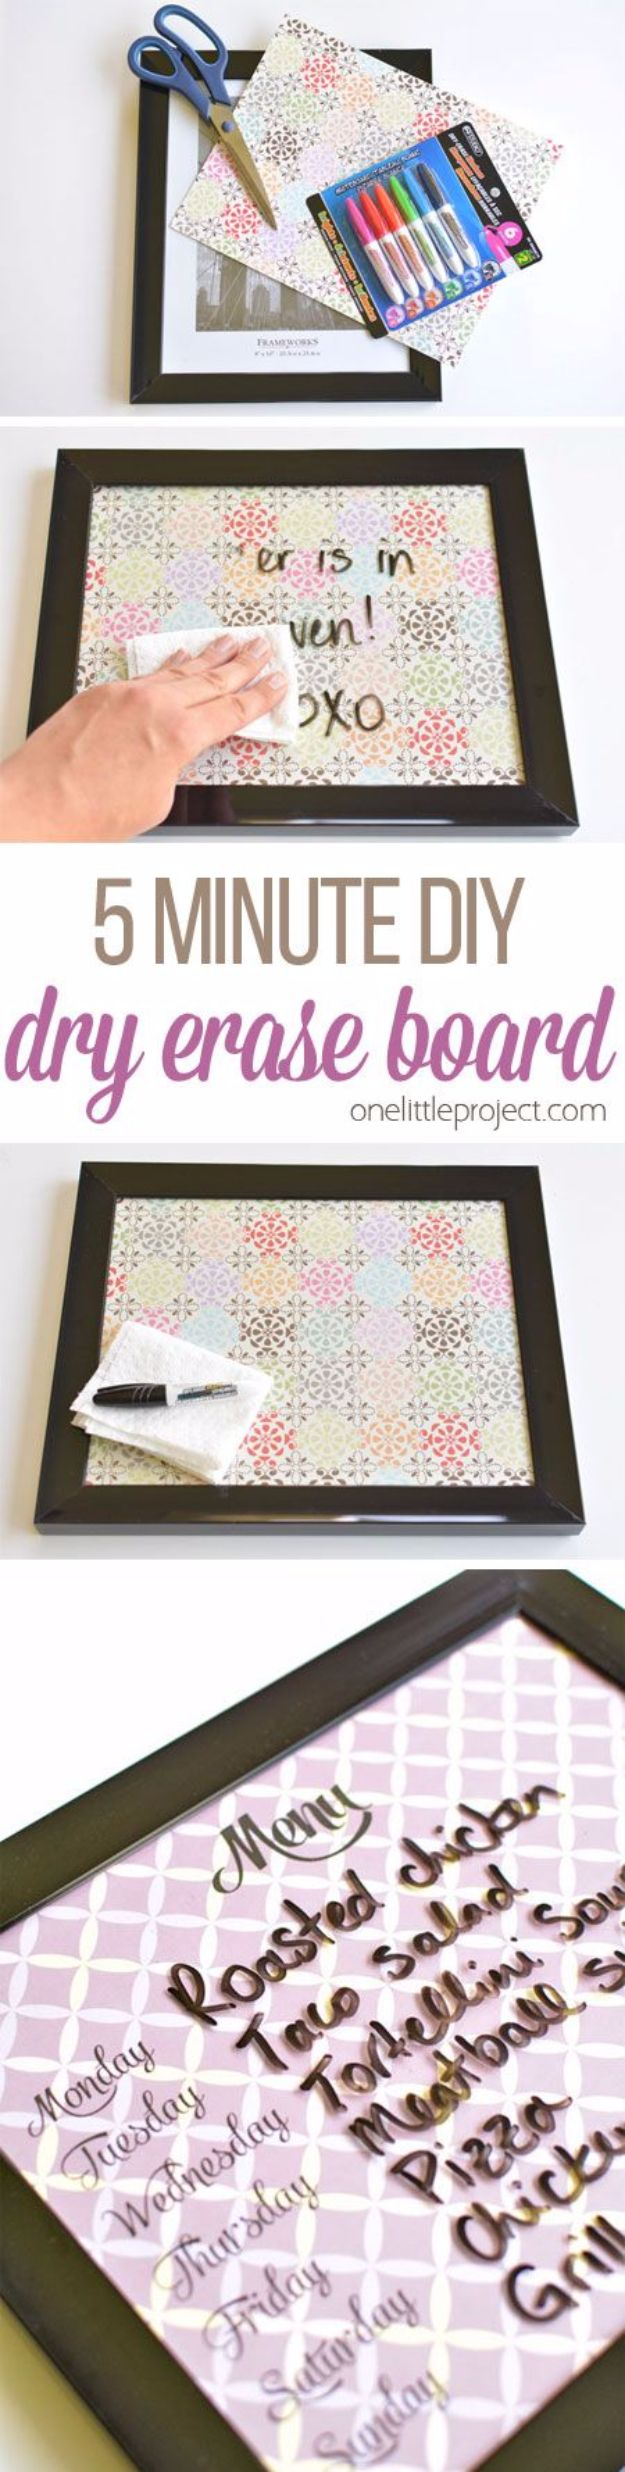 Crafts for Teens to Make and Sell - 5 Minute Dry Erase Board - Cheap and Easy DIY Ideas To Make For Extra Money - Best Things to Sell On Etsy, Dollar Store Craft Ideas, Quick Projects for Teenagers To Make Spending Cash - DIY Gifts, Wall Art, School Supplies, Room Decor, Jewelry, Fashion, Hair Accessories, Bracelets, Magnets #teencrafts #craftstosell #etsyideass